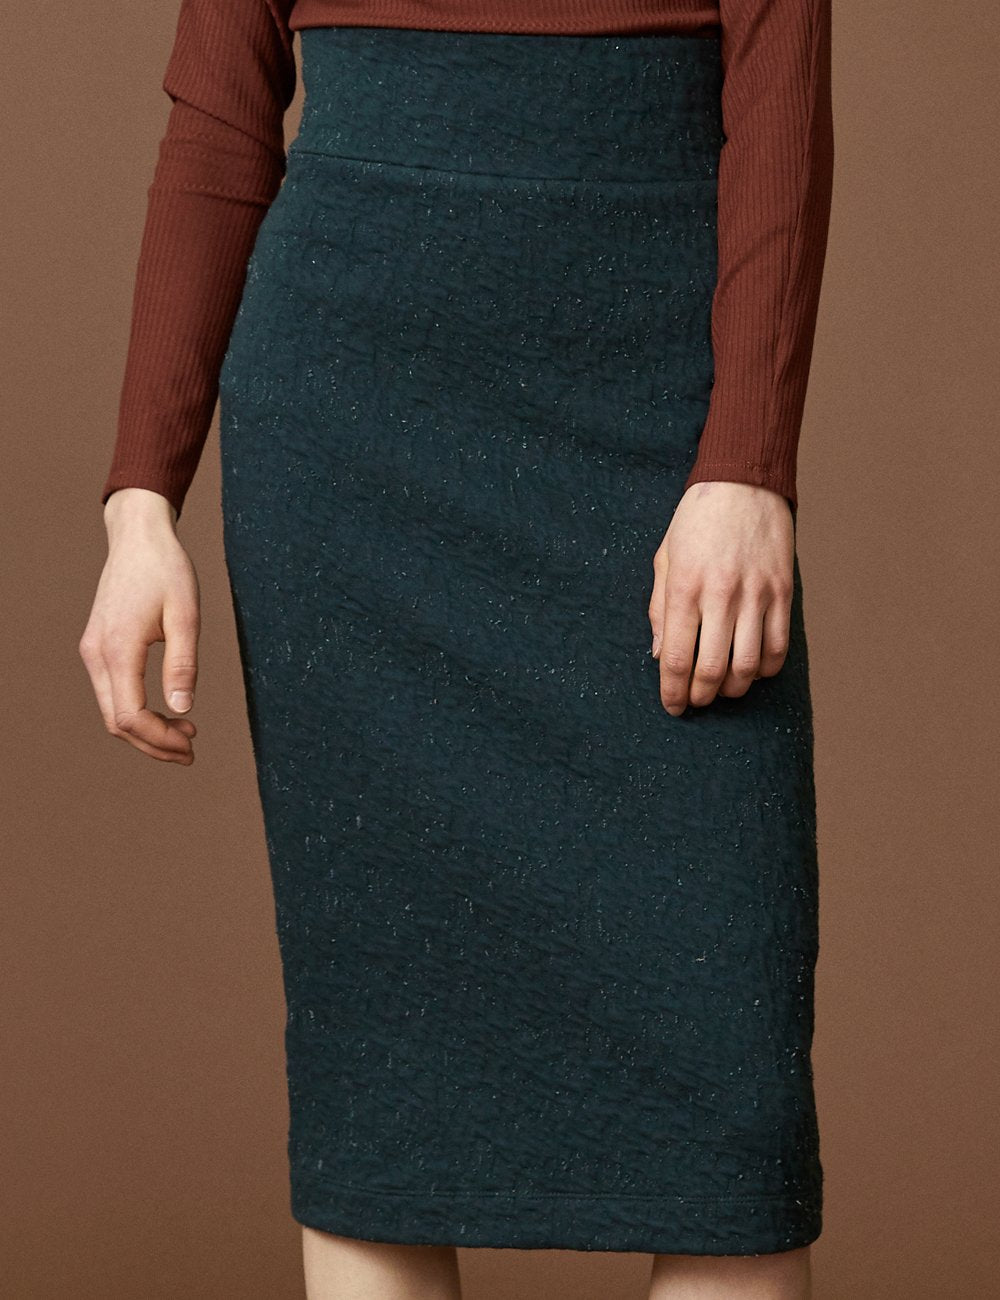 COKLUCH Gemini Skirt in Teal Crinkle (close up) FW2020/2021